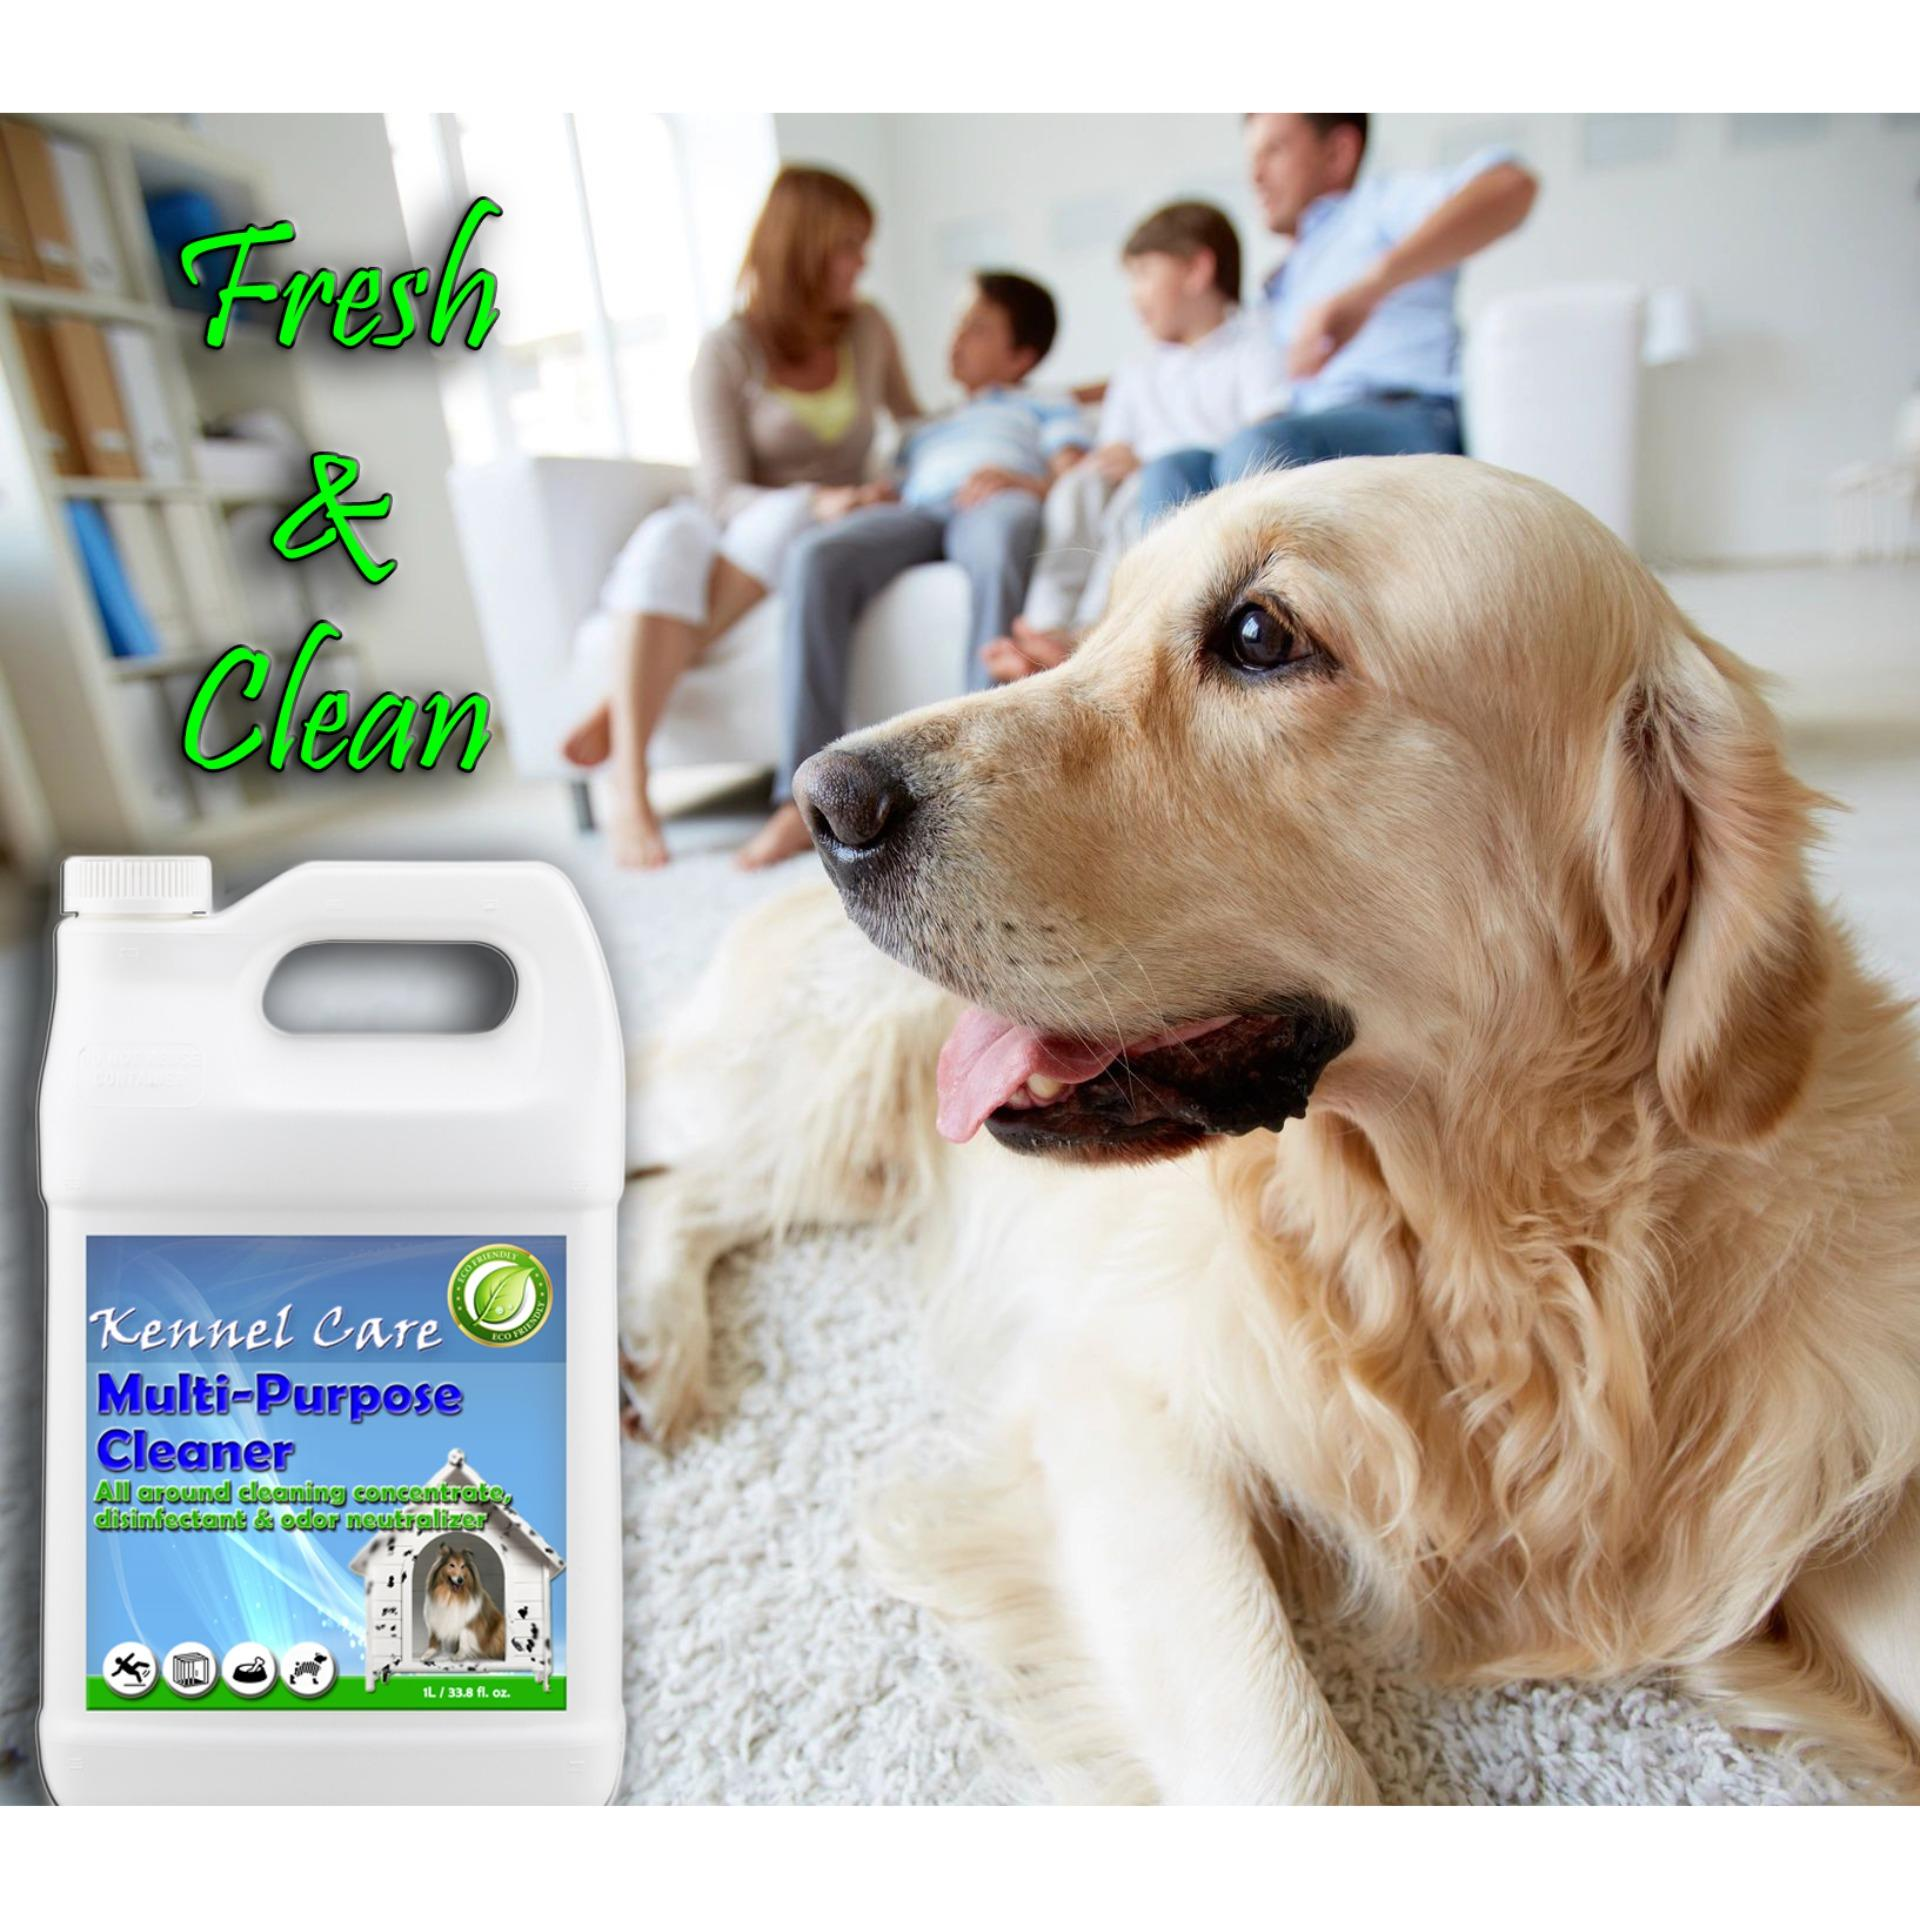 Dog Potty For Sale Puppy Potty Online Brands Prices Reviews In